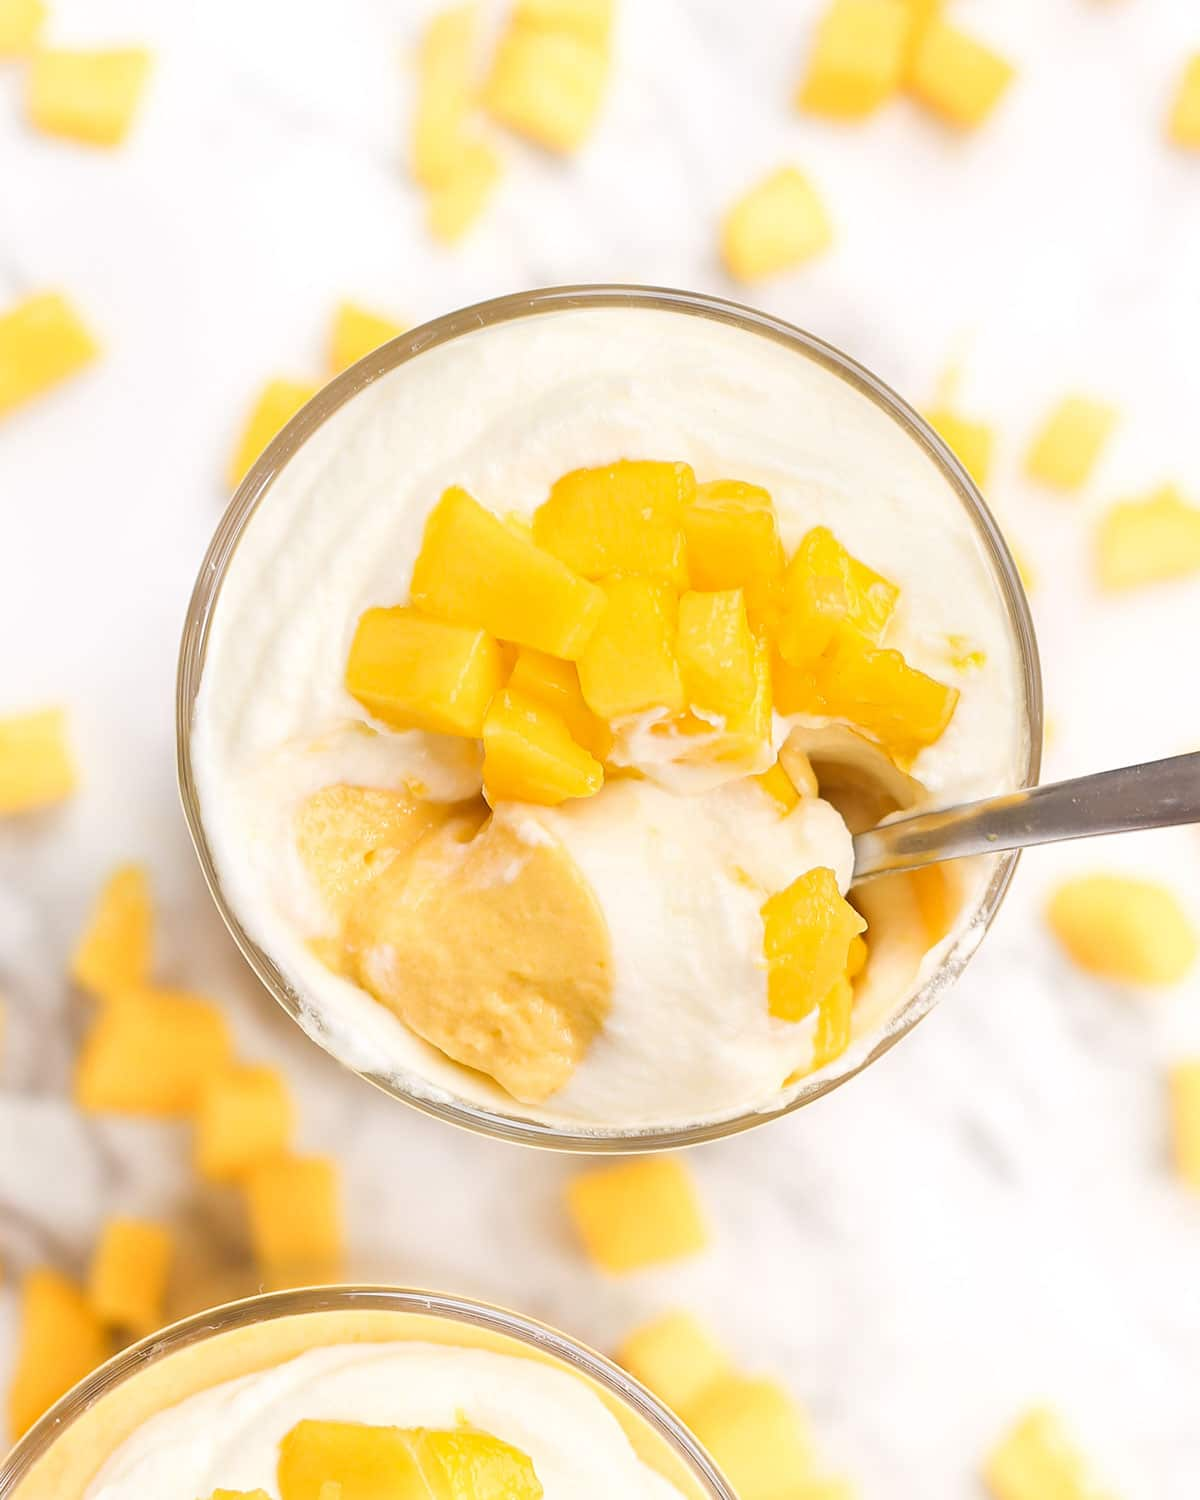 a spoon scooping mango mousse topped with whipped cream from a glass